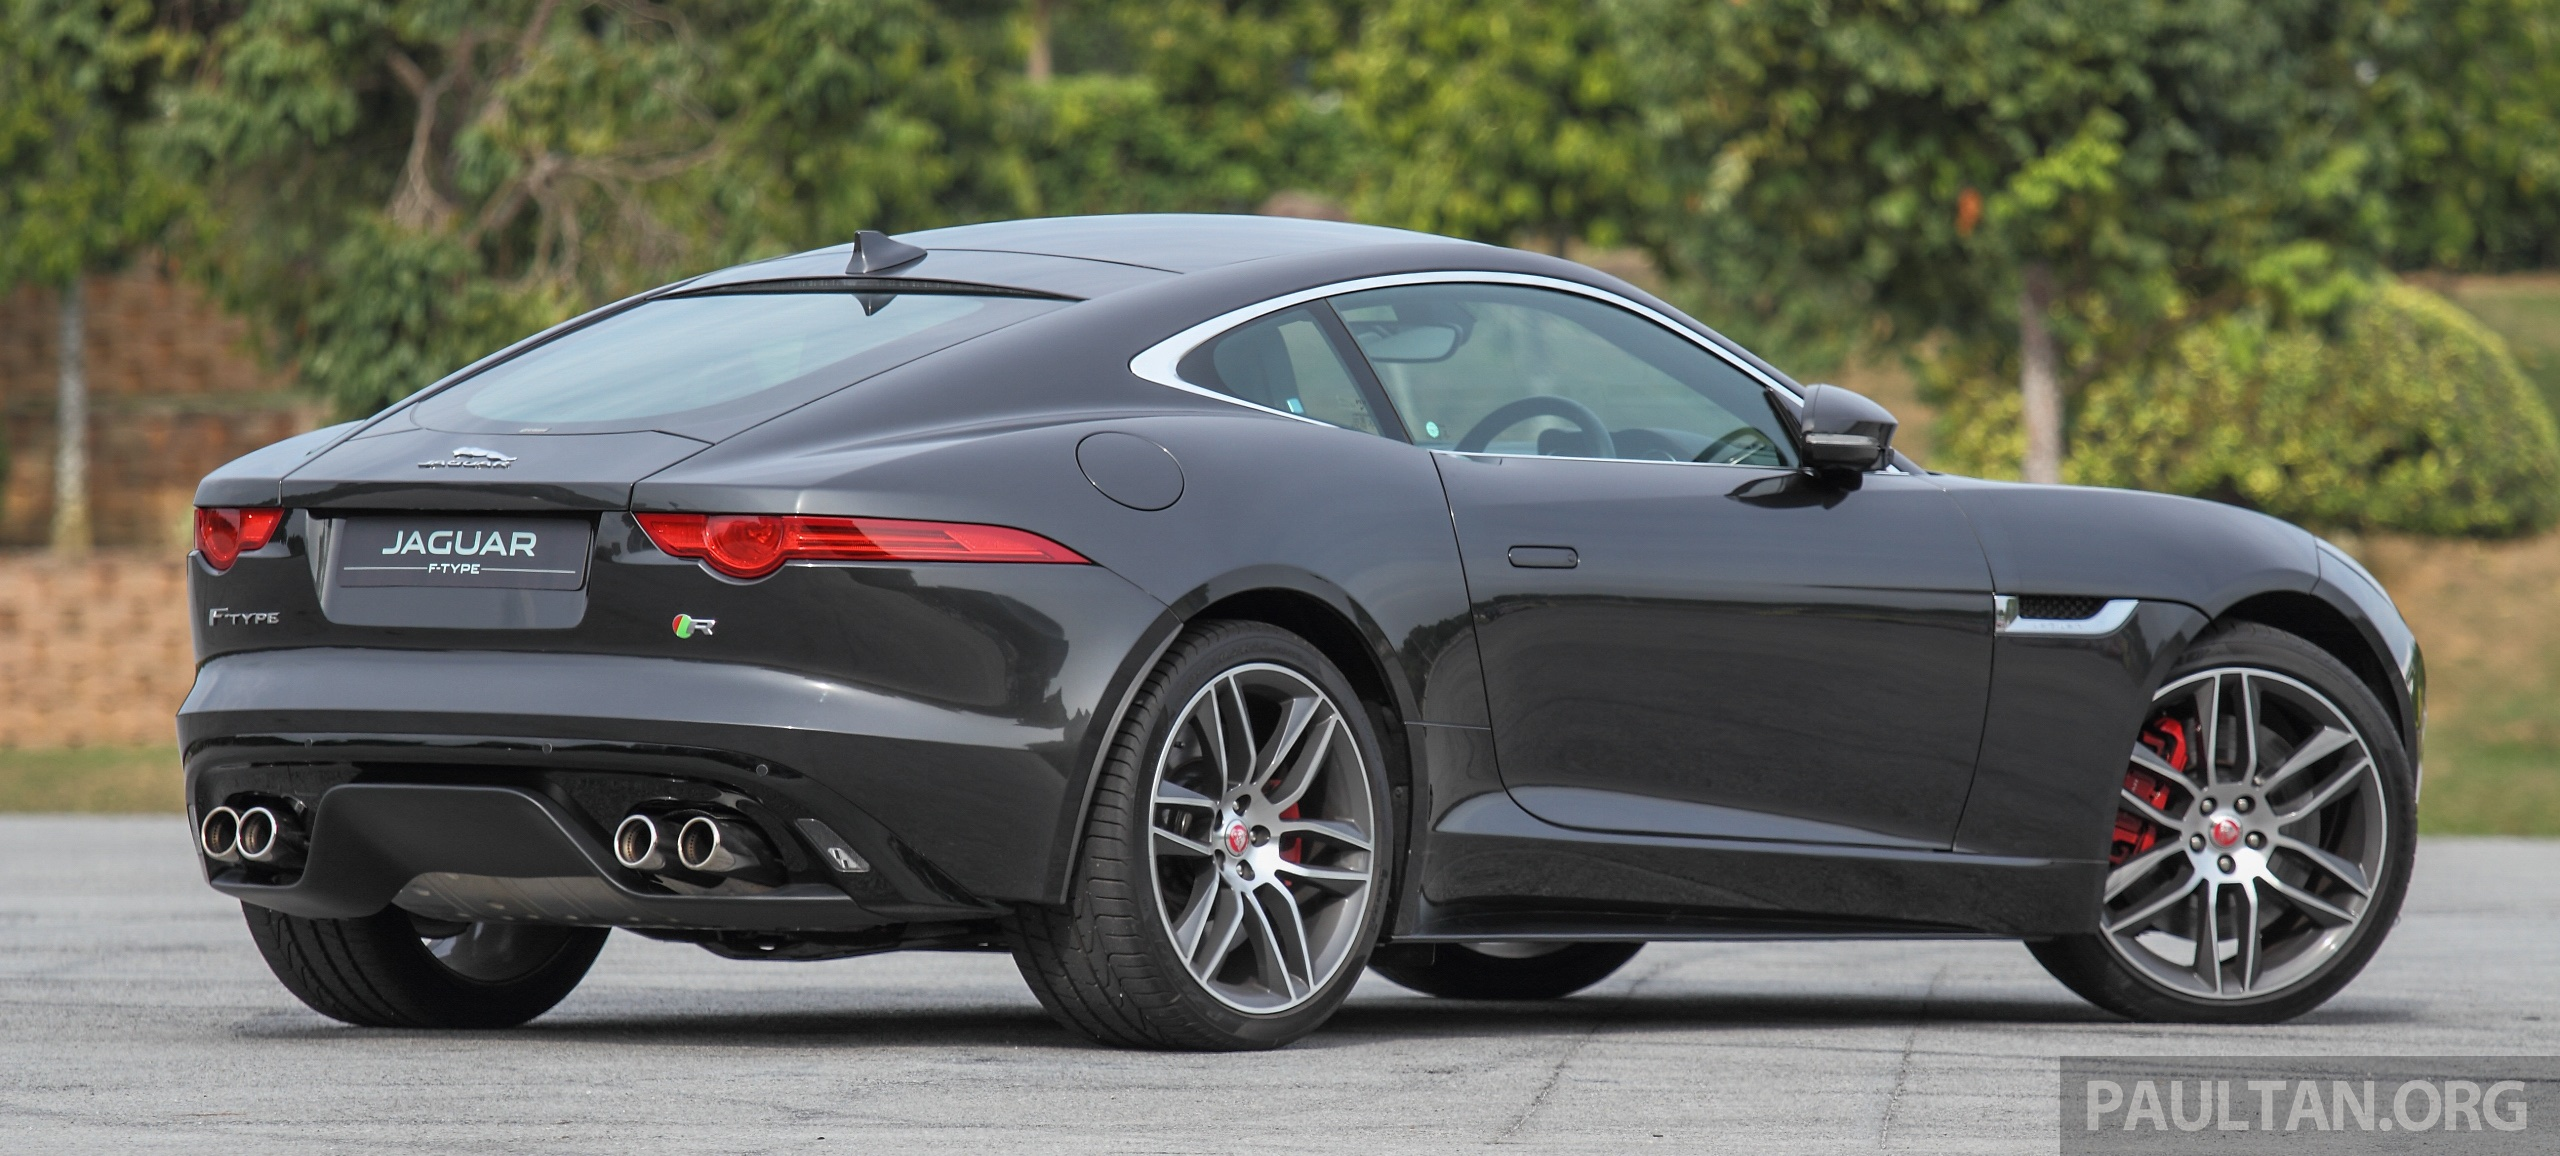 Gallery Jaguar F Type R It S Really Good To Be Bad